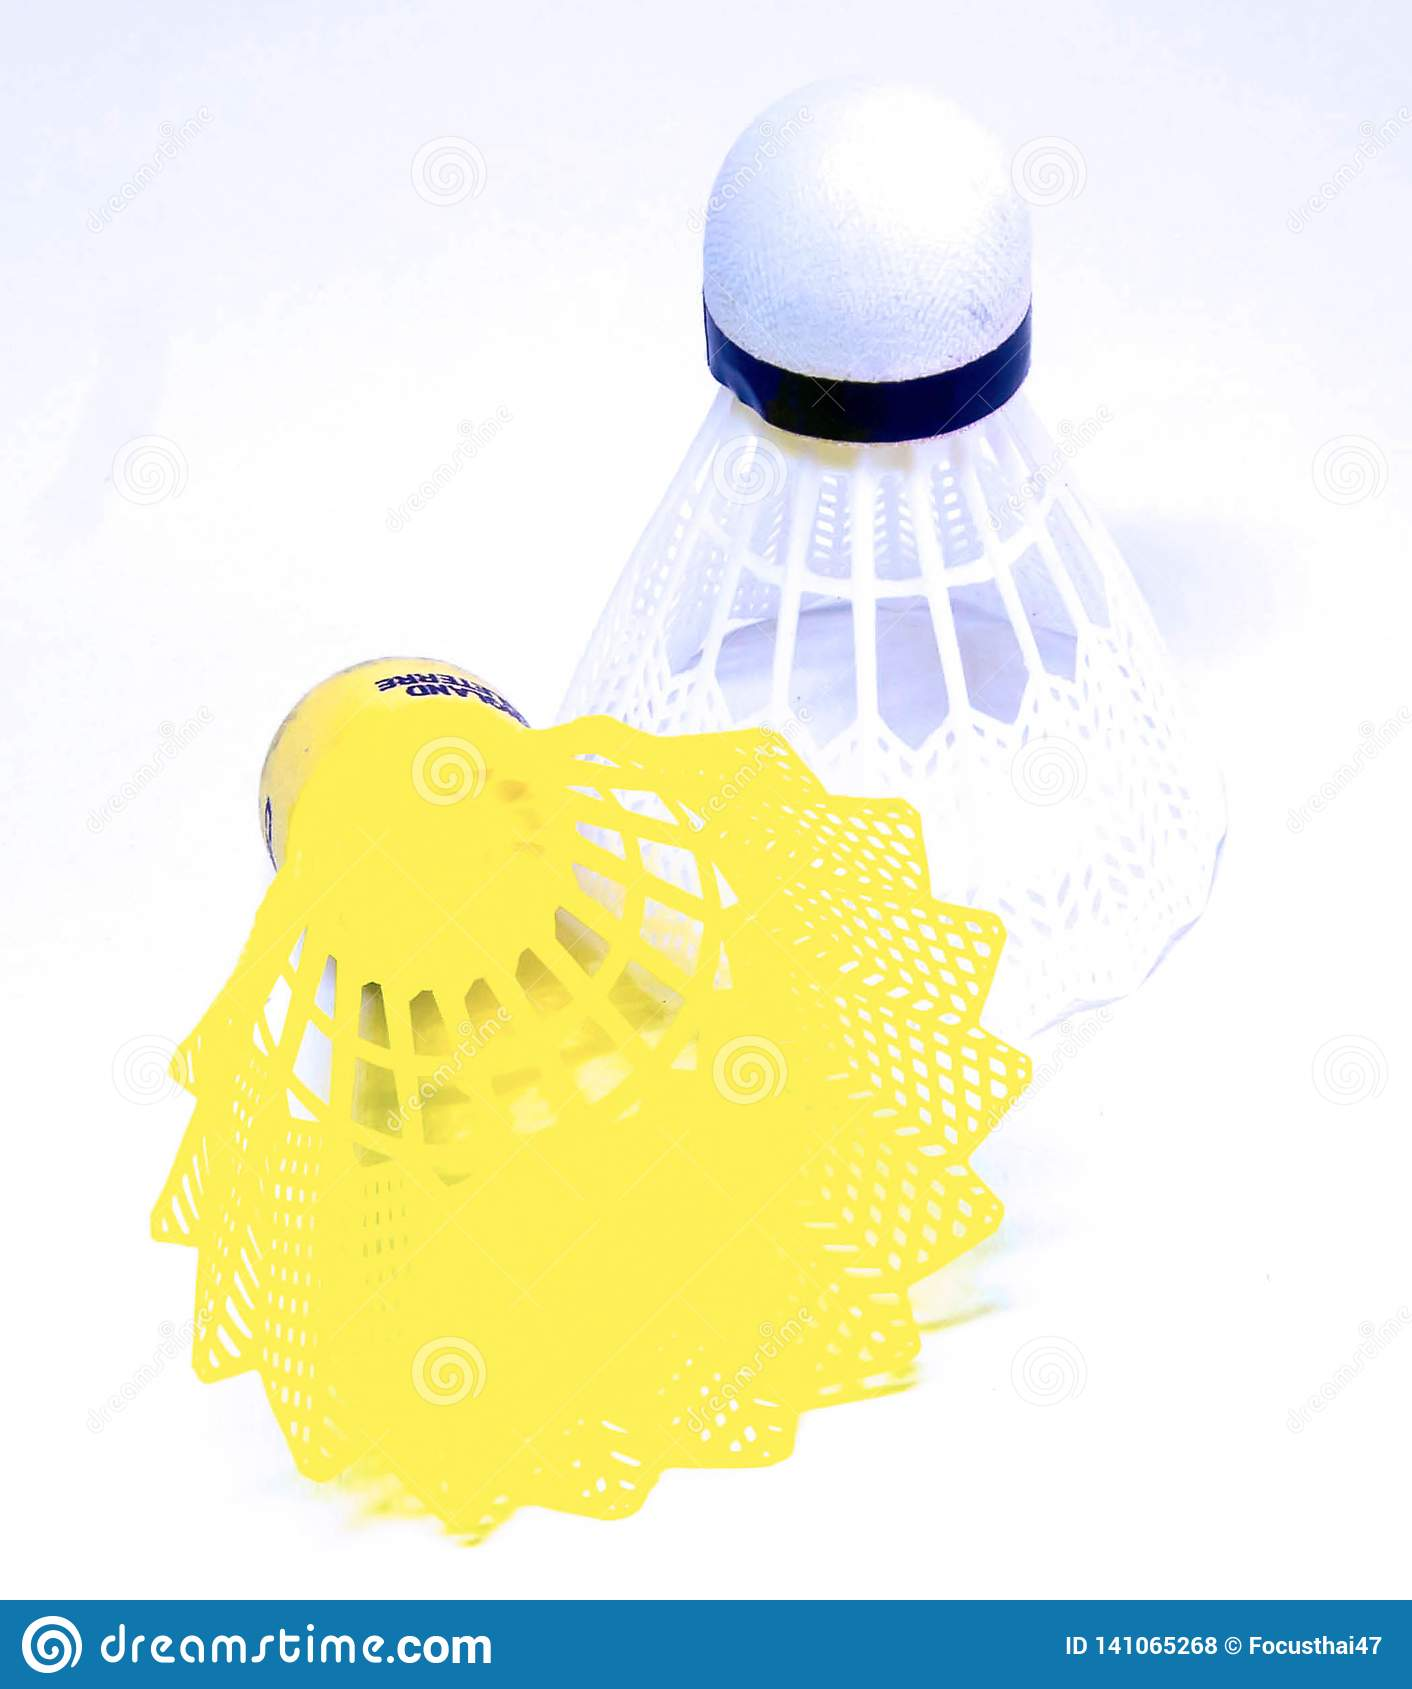 Badminton balls in white and yellow color